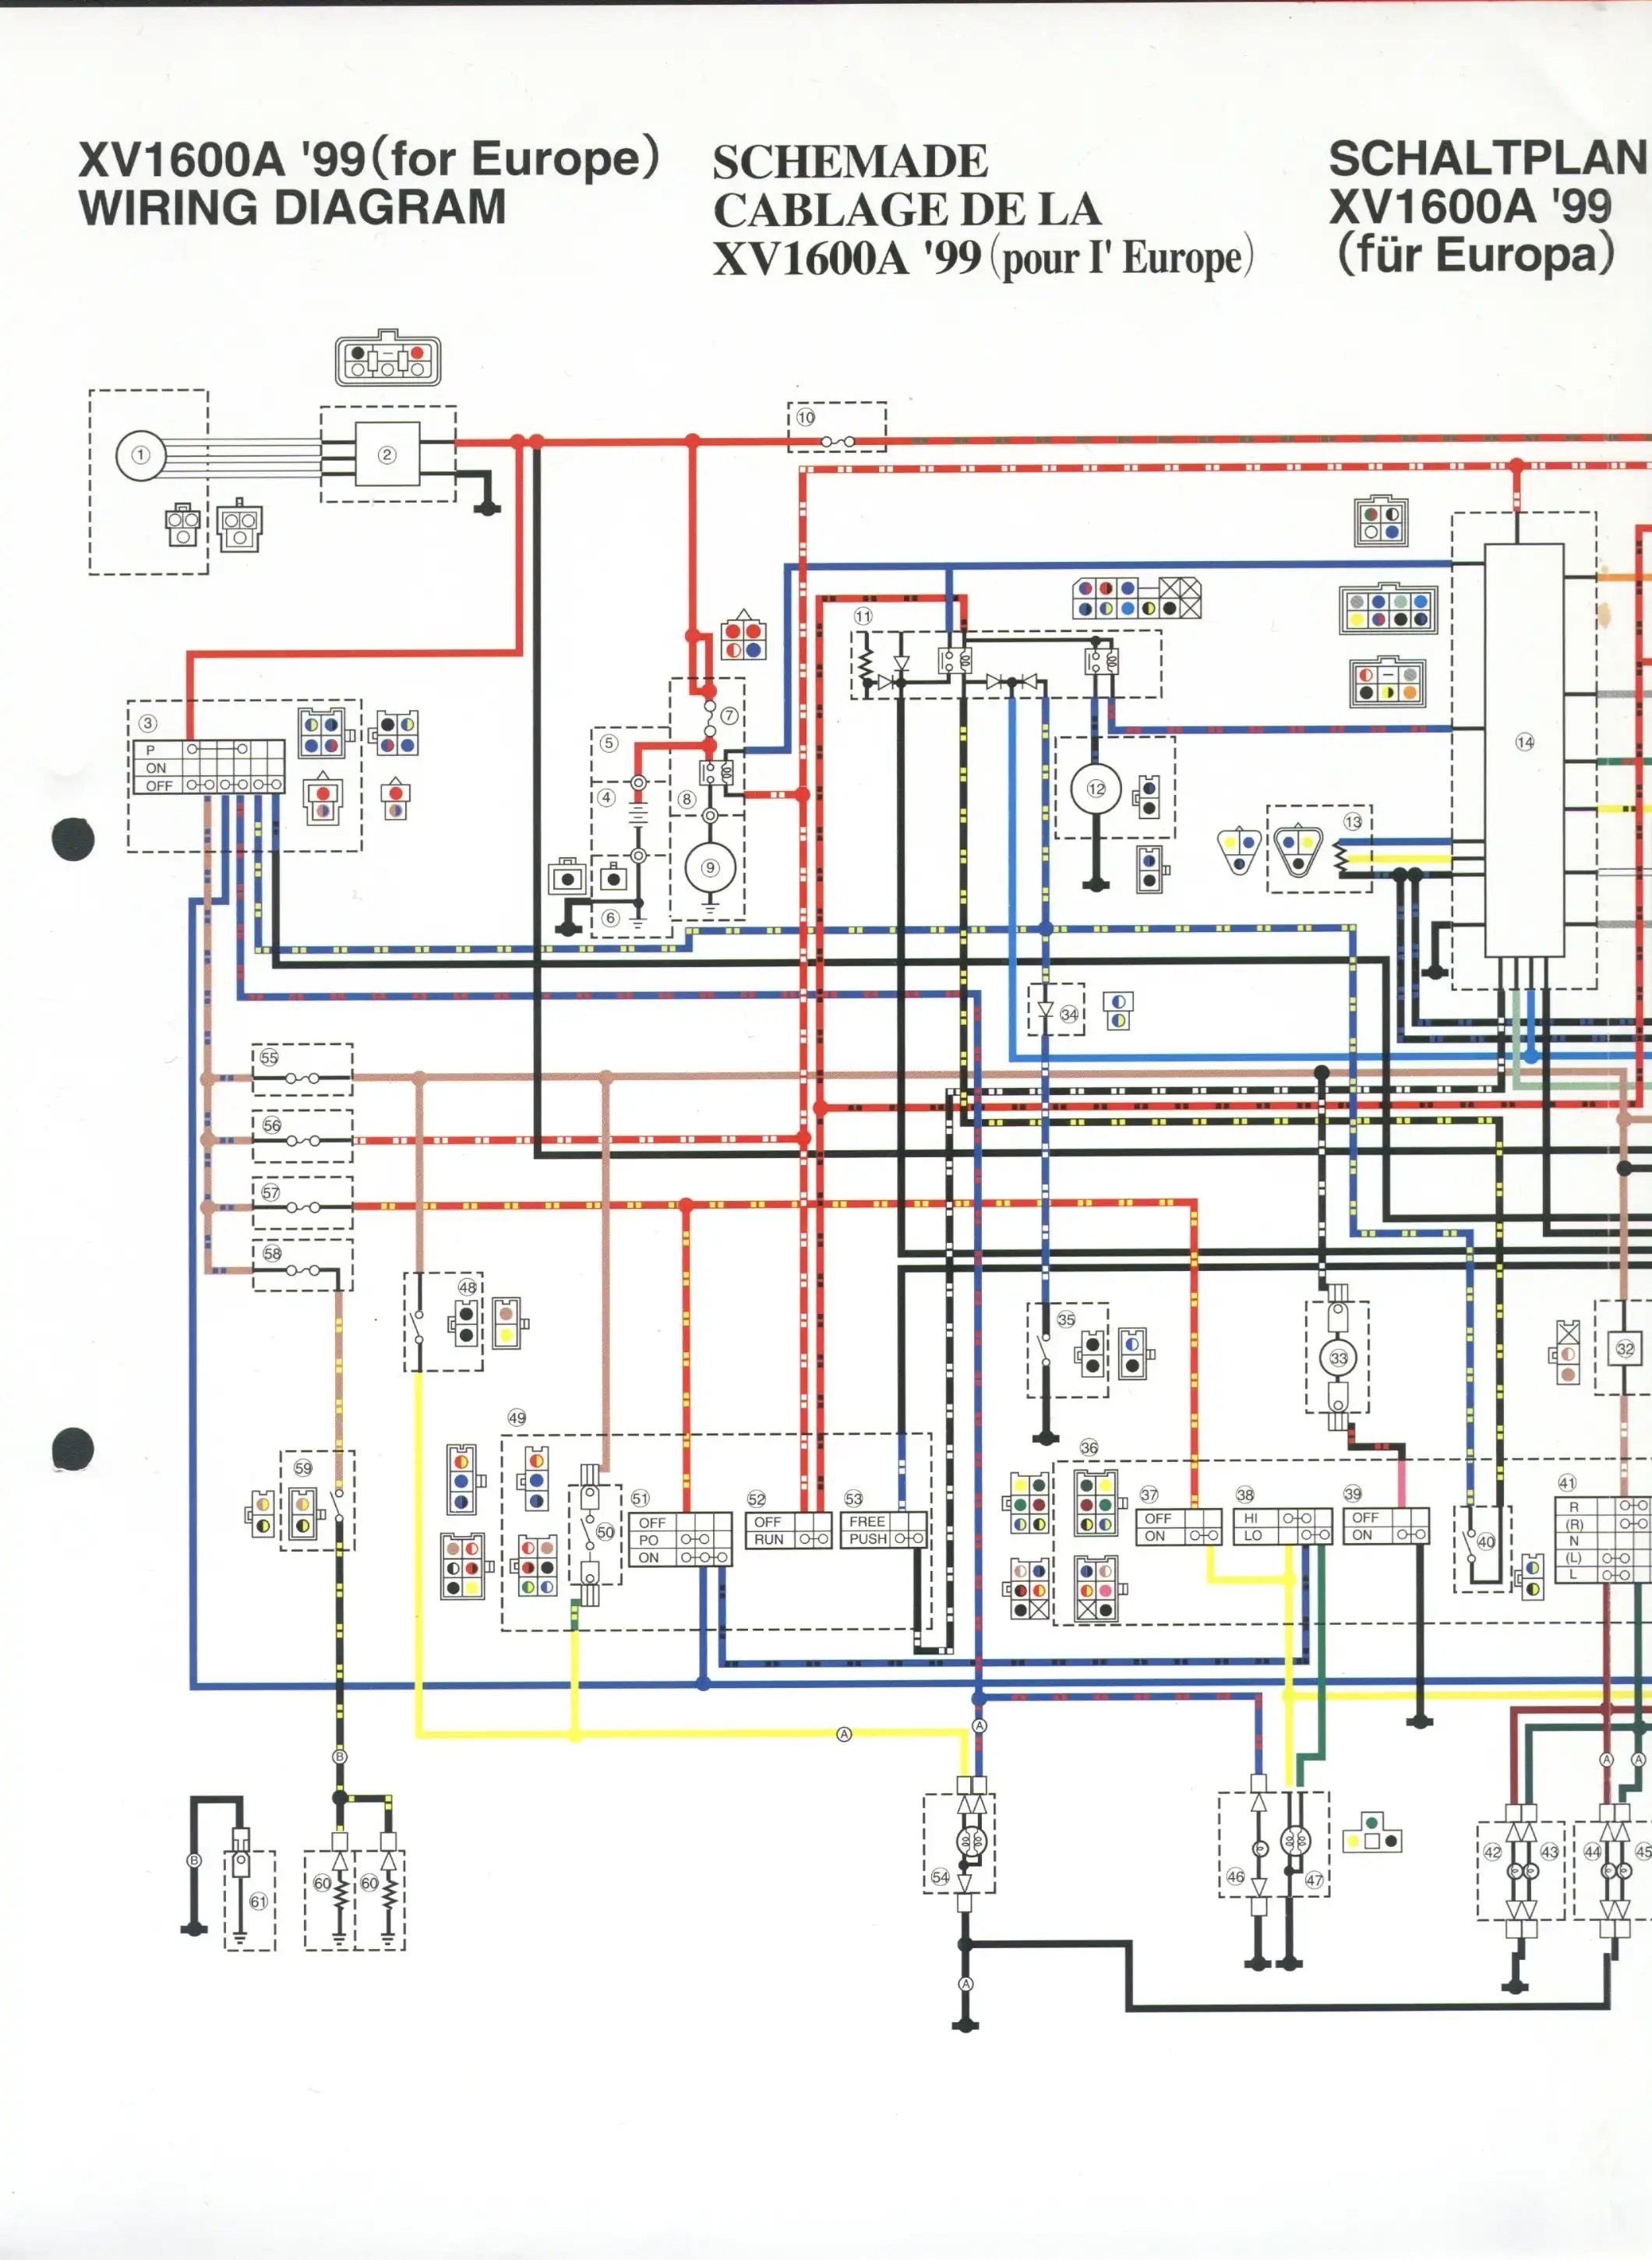 DIAGRAM] 81 Virago 750 Wiring Diagram FULL Version HD Quality Wiring Diagram  - SUNSUSPENSION.MAI-LIE.FRsunsuspension.mai-lie.fr